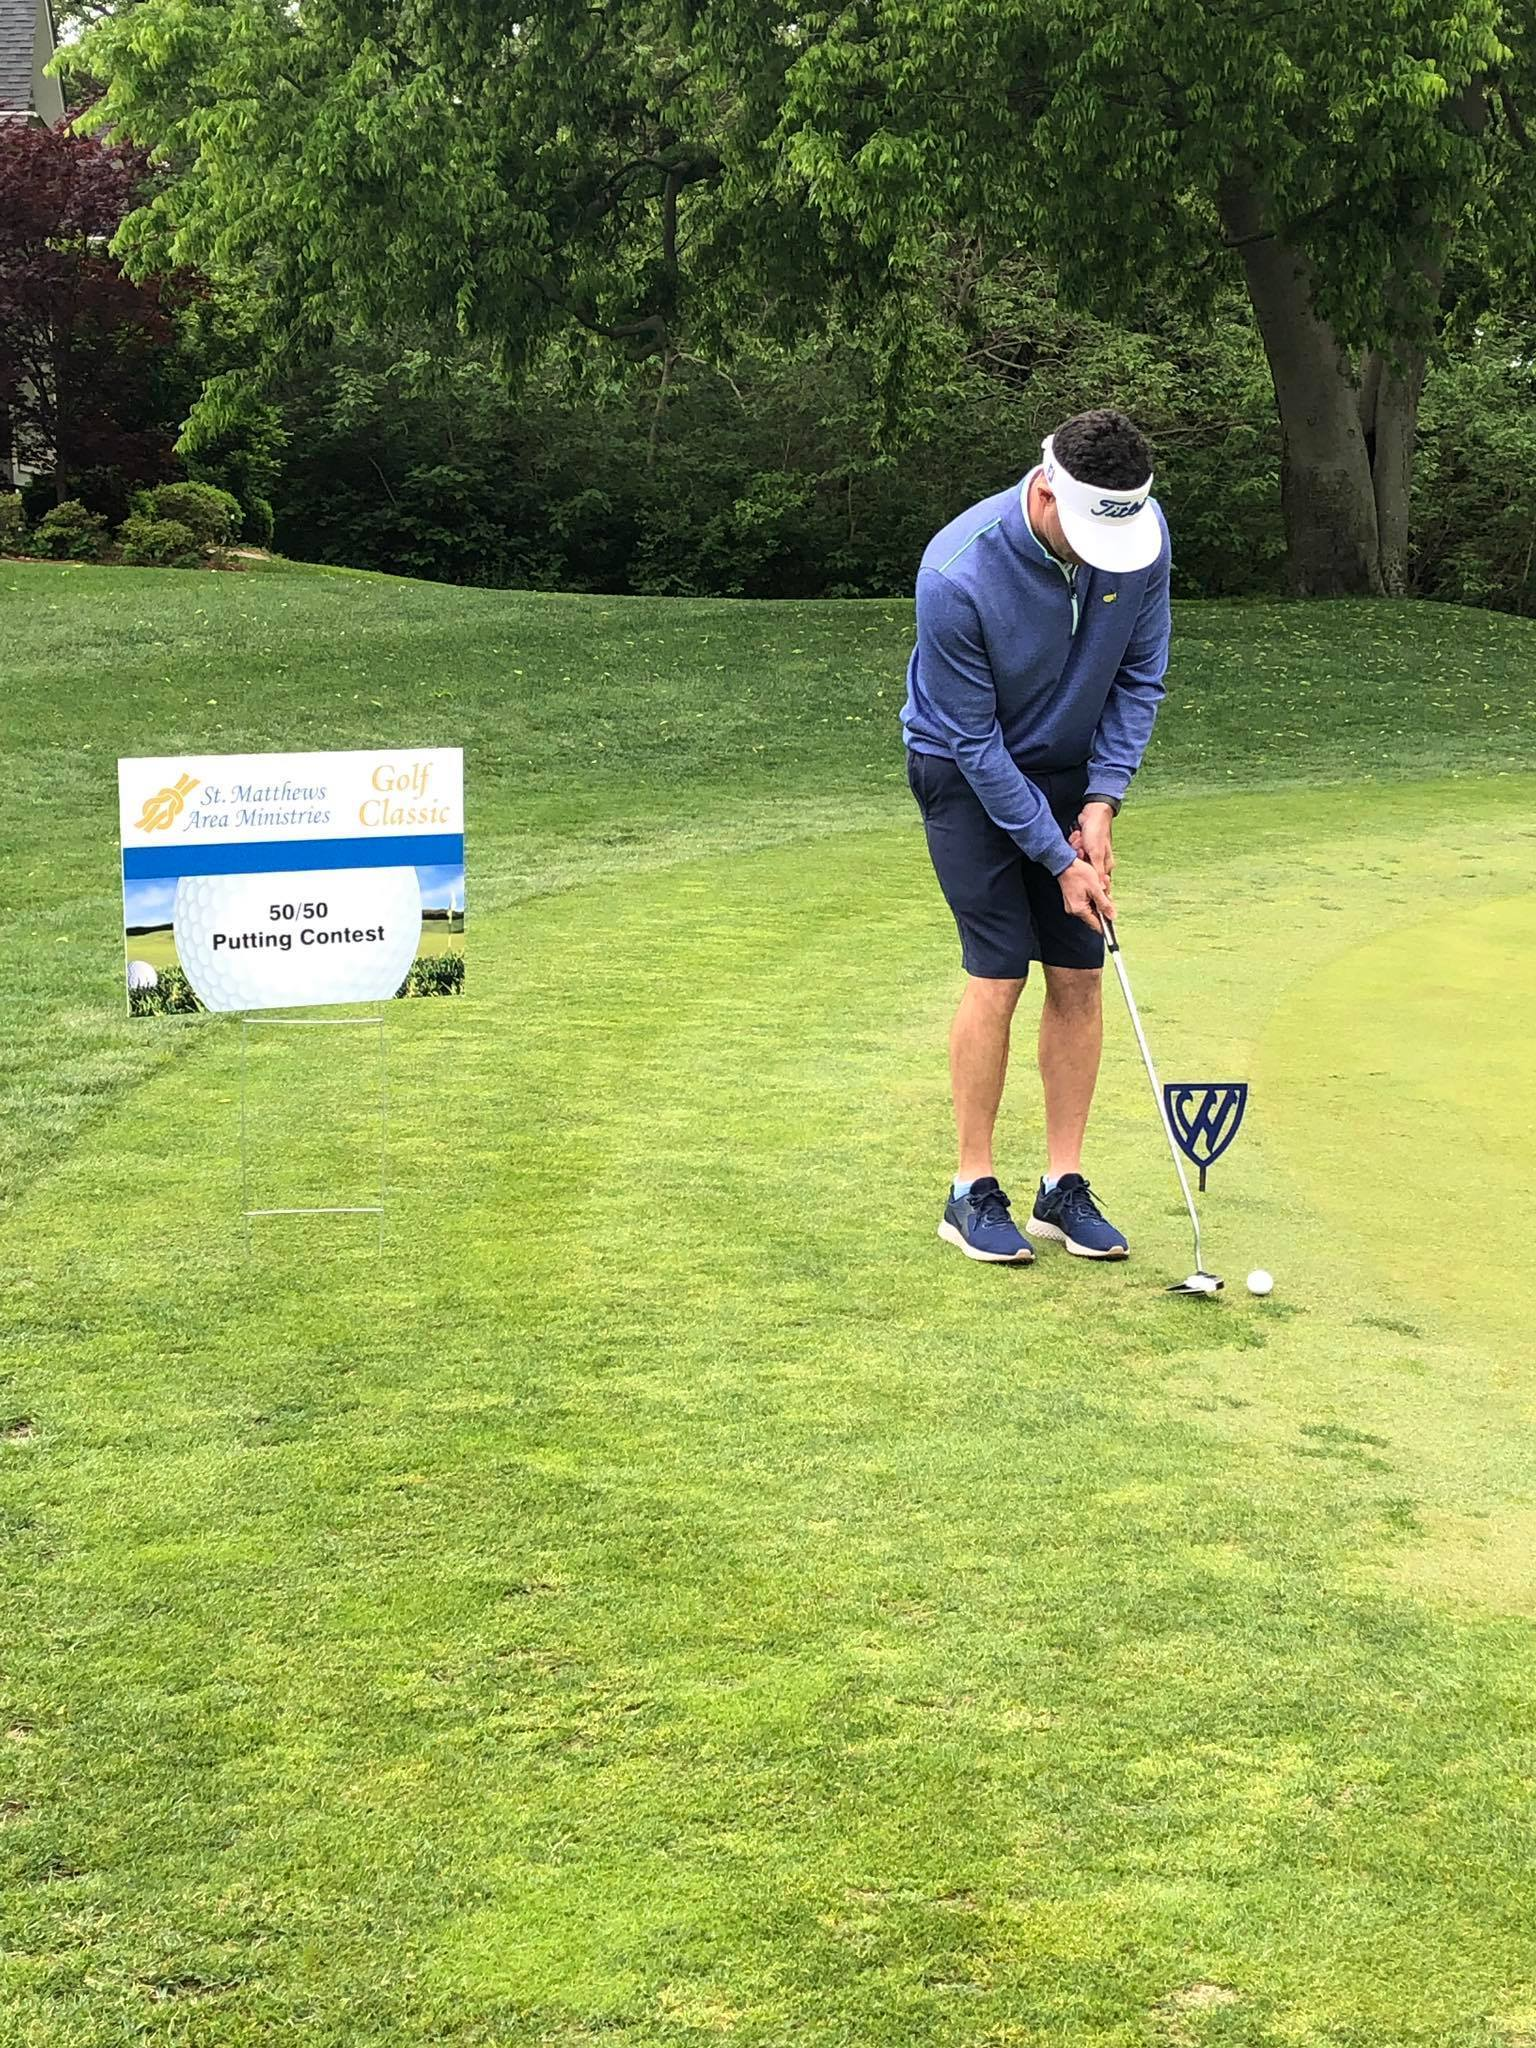 St. Matthews Area Ministries Golf Classic gallery image #7